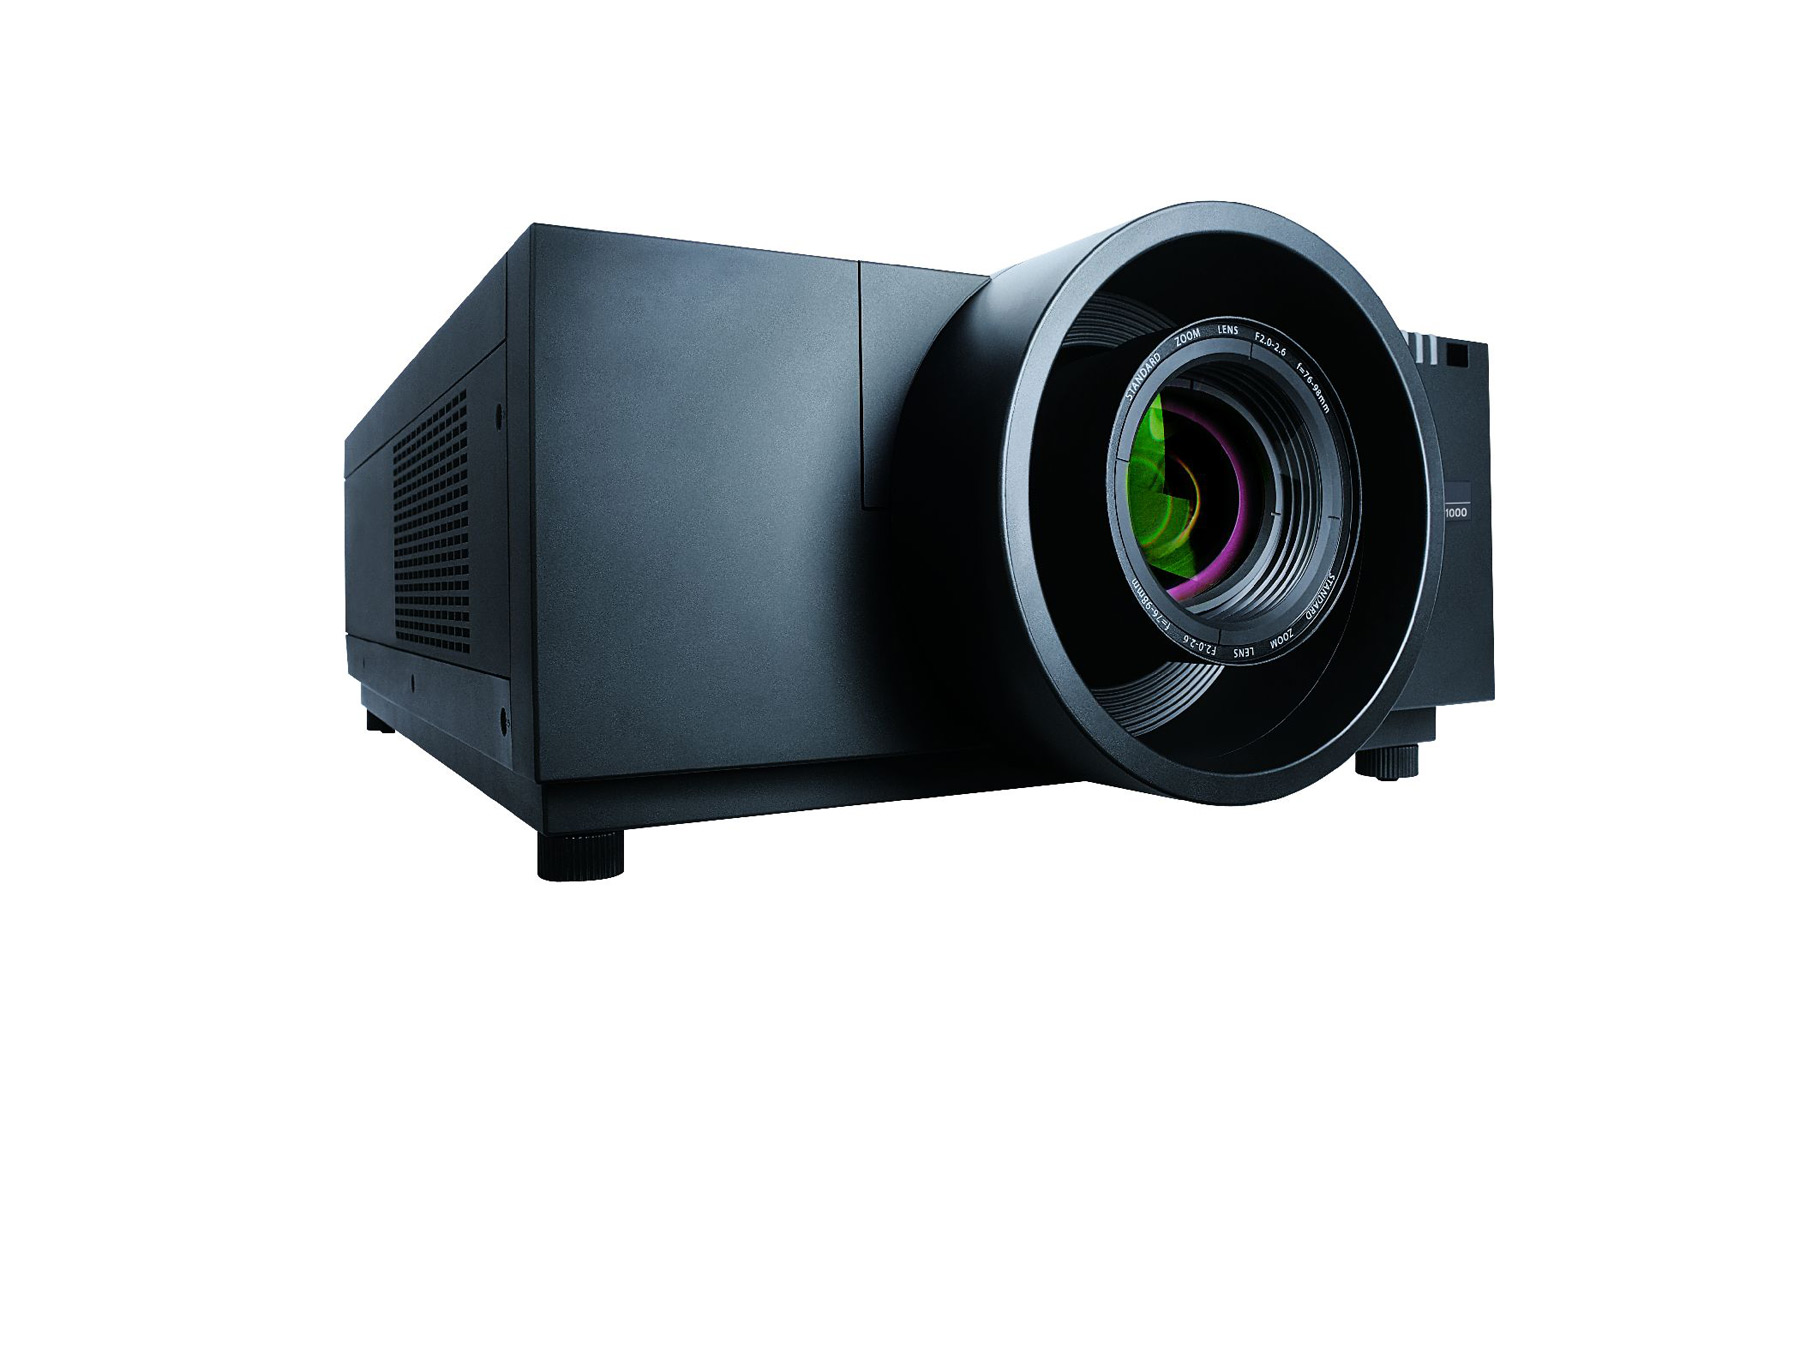 /globalassets/.catalog/products/images/christie-l2k1000/gallery/christie-l2k-1000-3-lcd-digital-projector-image-10.jpg